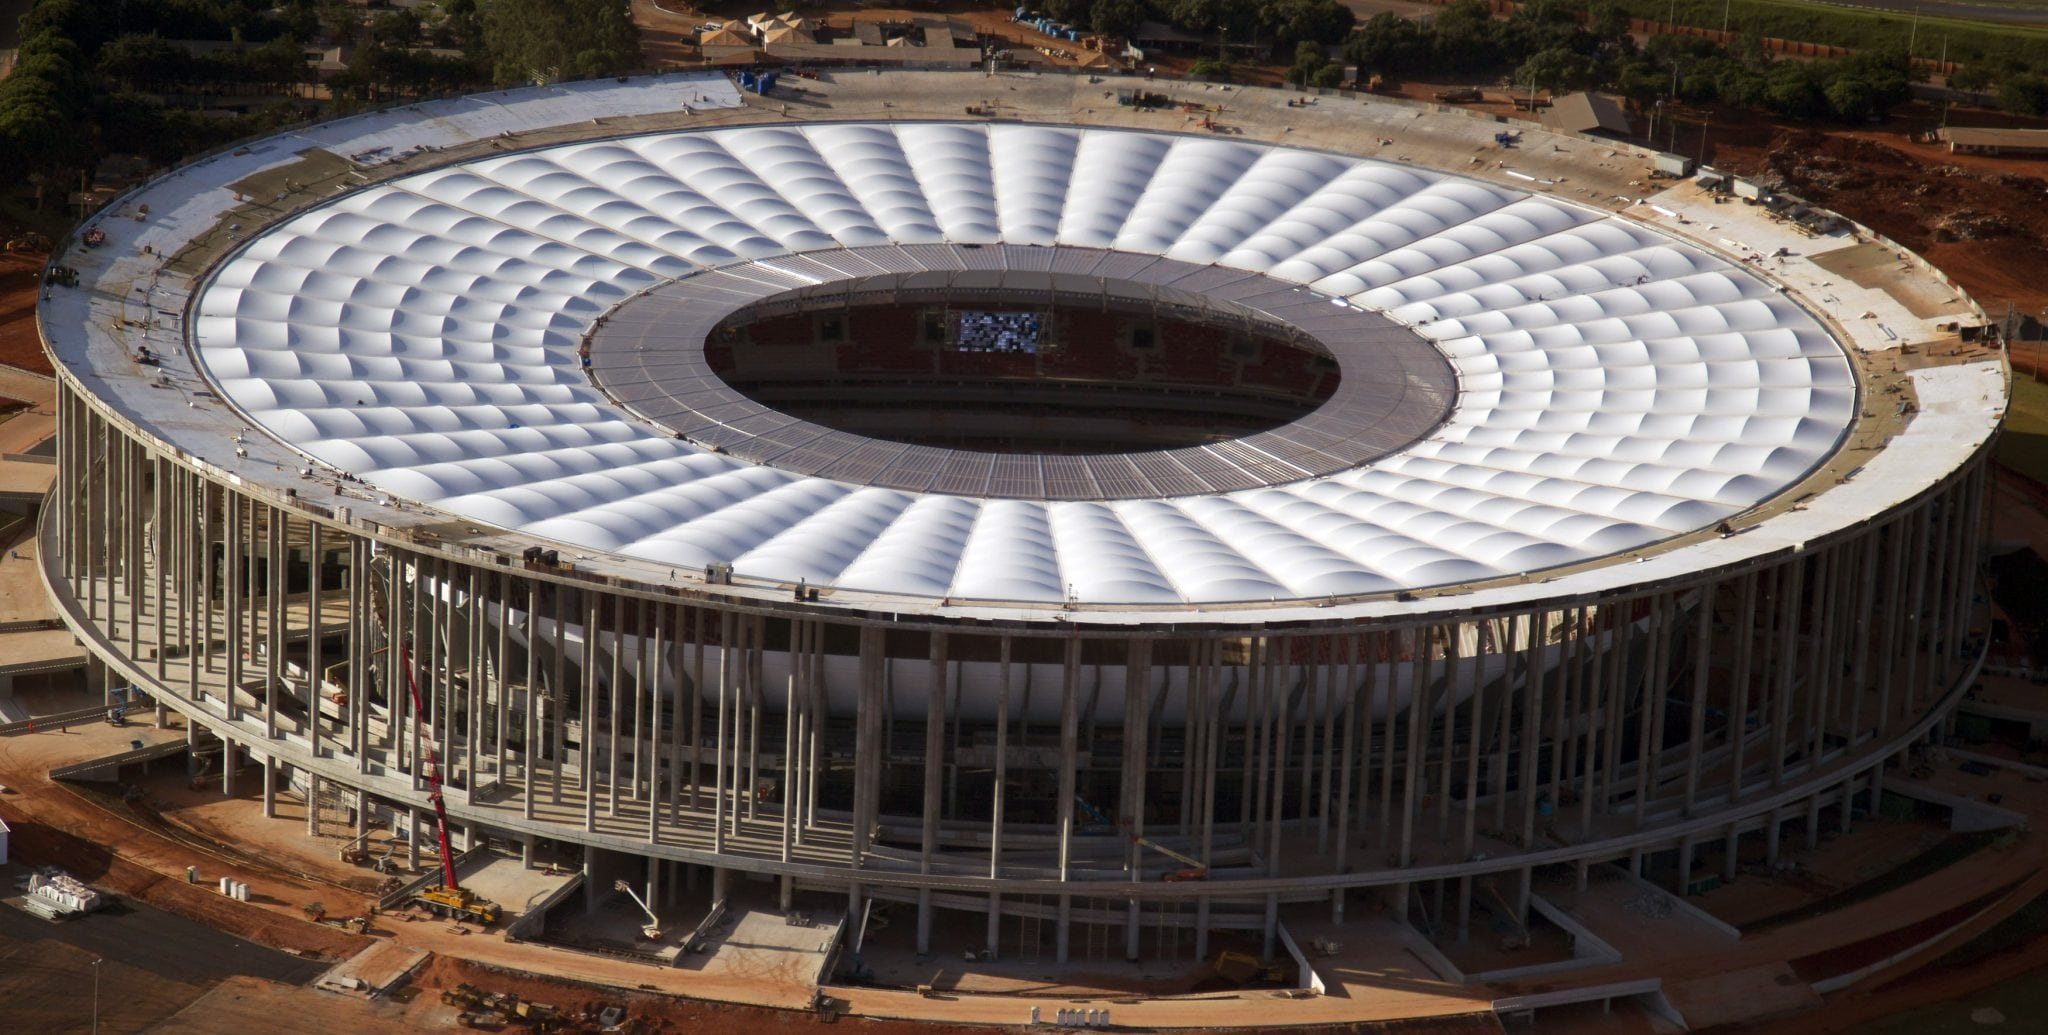 Brazil World Cup building: Spending boom on stadiums while sewage suffers